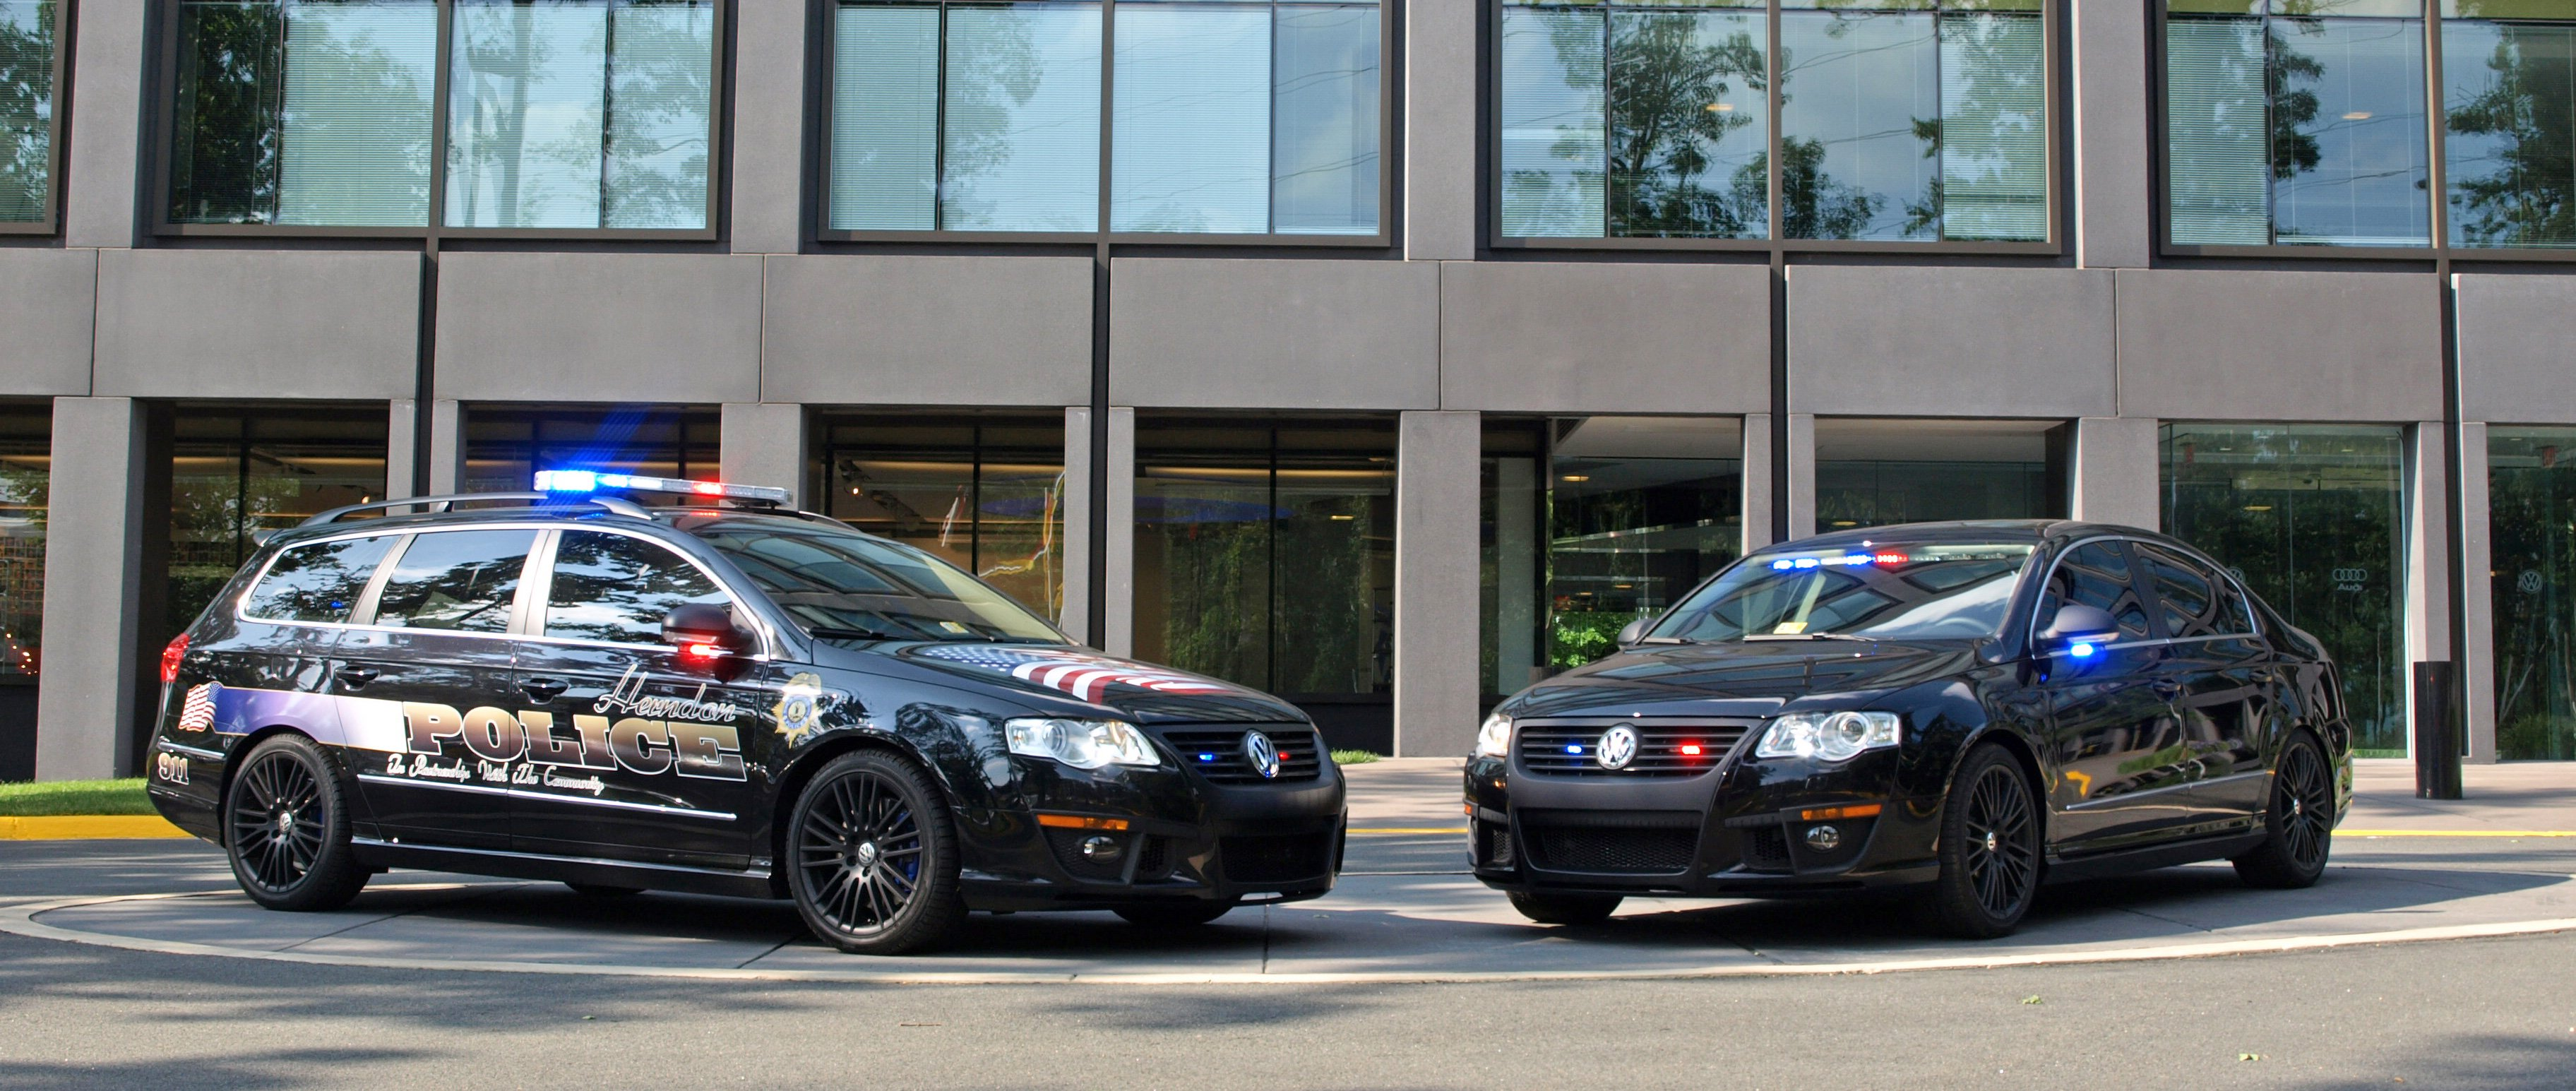 Volkswagen Provides Apr Tuned Police Cars To Local Police